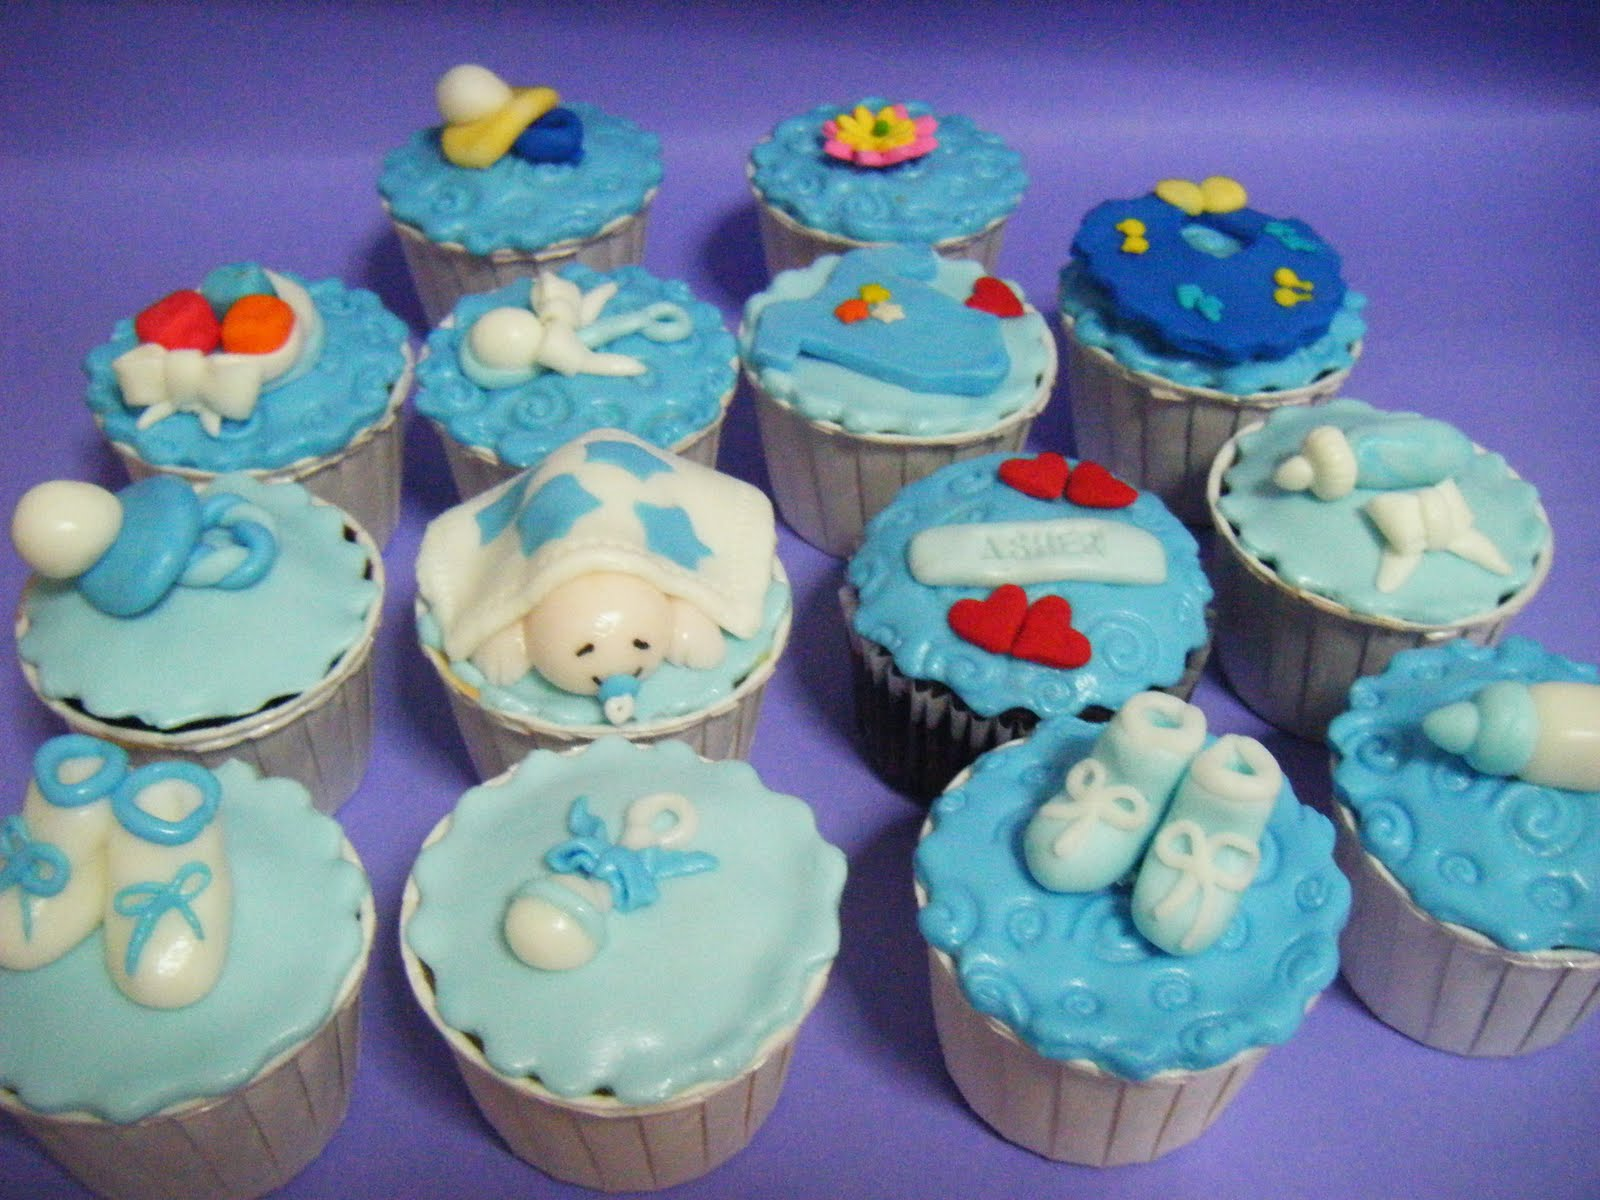 ~~~Ecupcakes~~~: Baby Boy Shower CupCakes